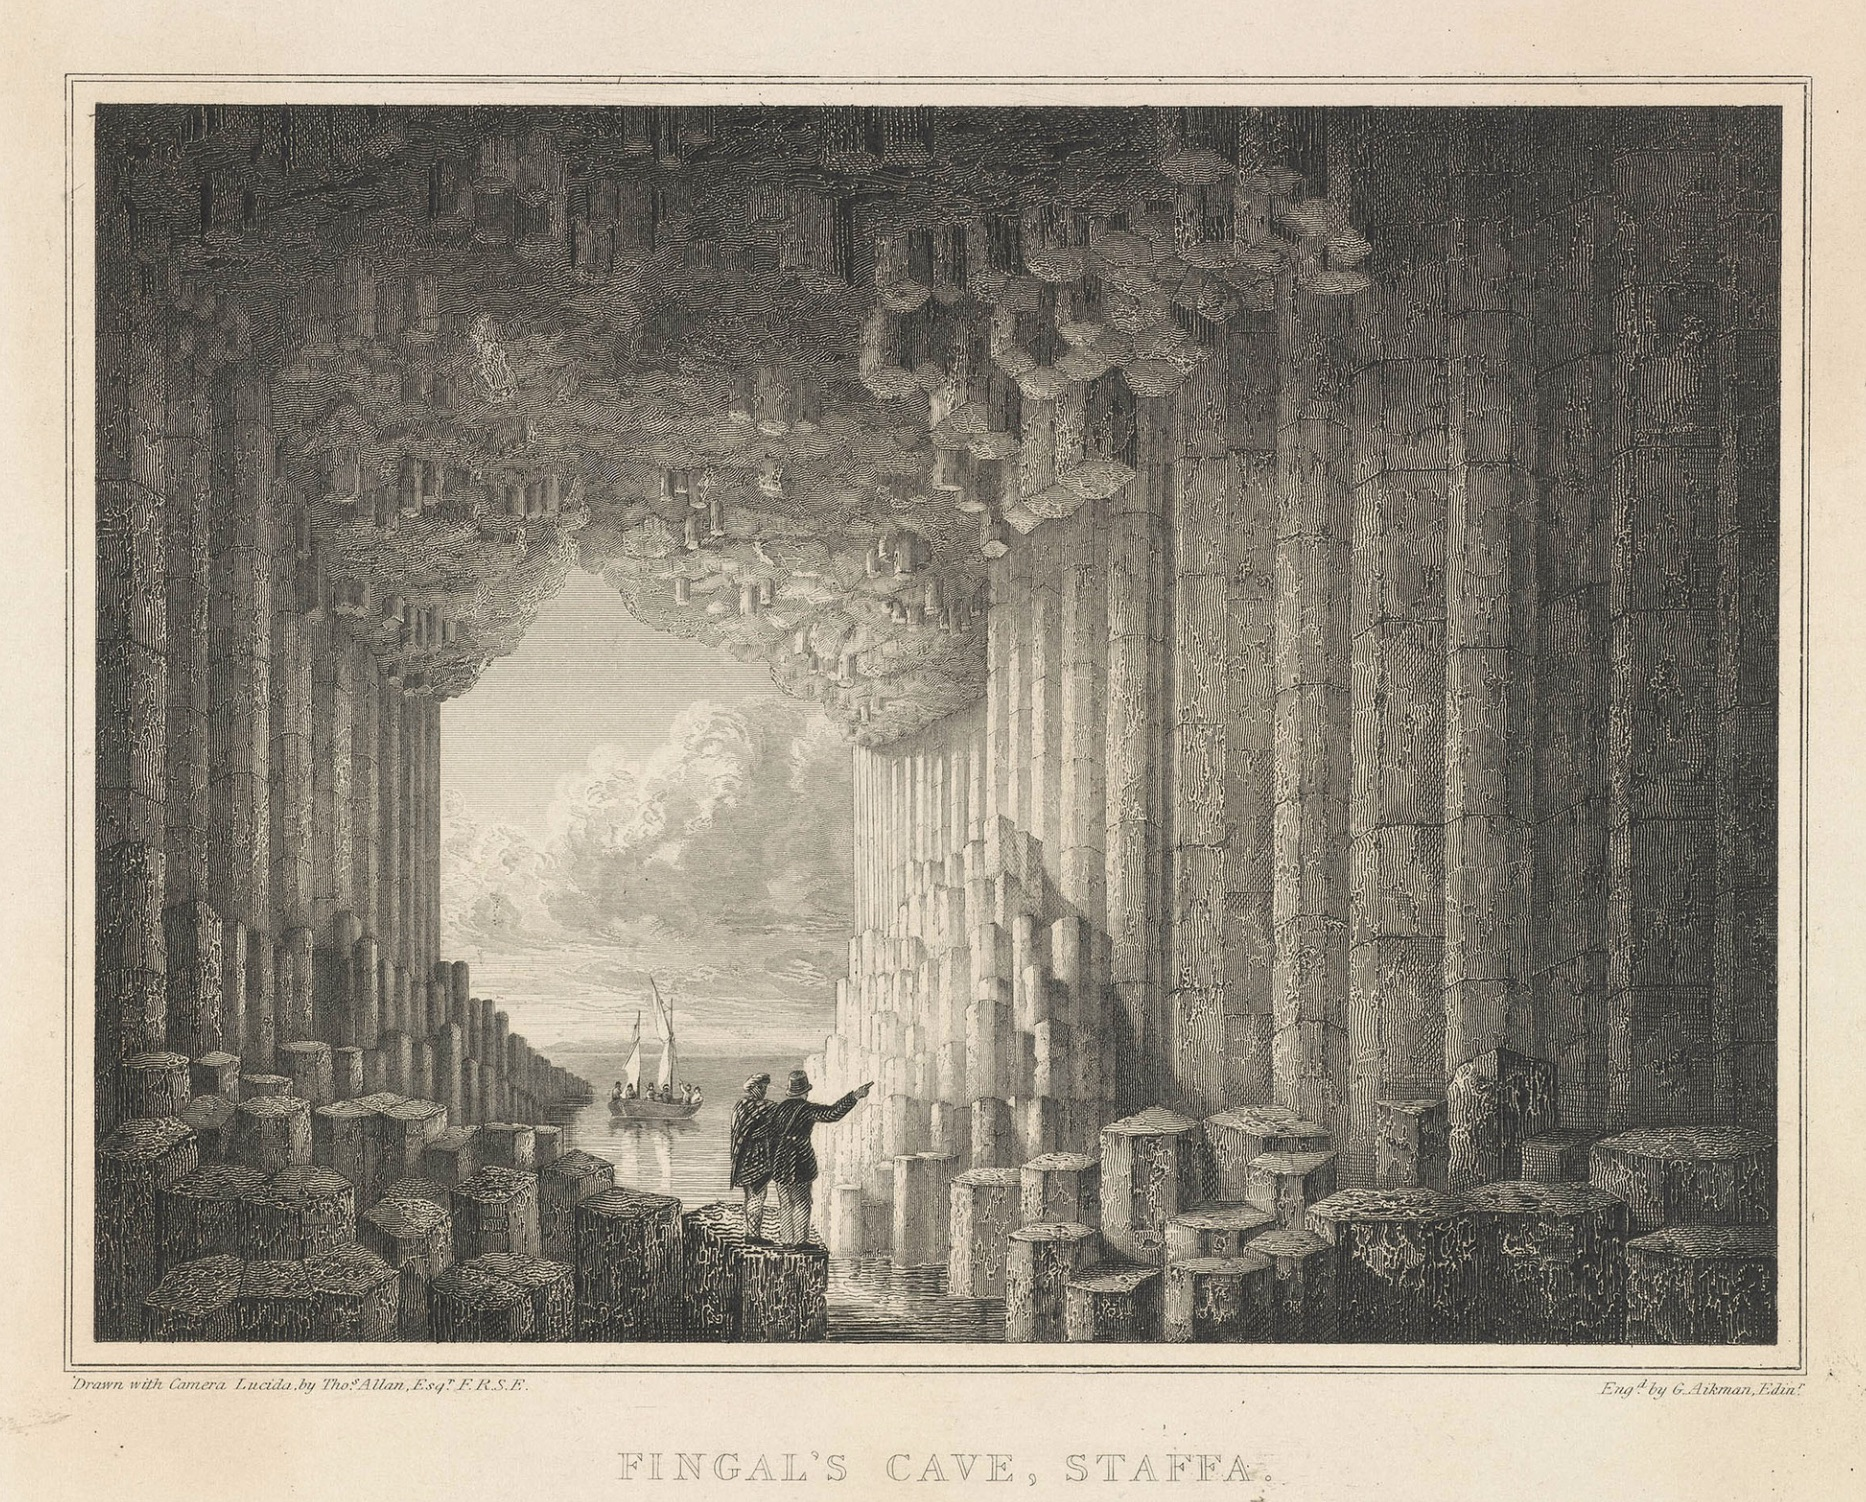 Fingal's Cave, Staffa Island, 1800 (after T. Allen; G. Aikman, engraver), Royal         Collection Trust (RCIN 702658)